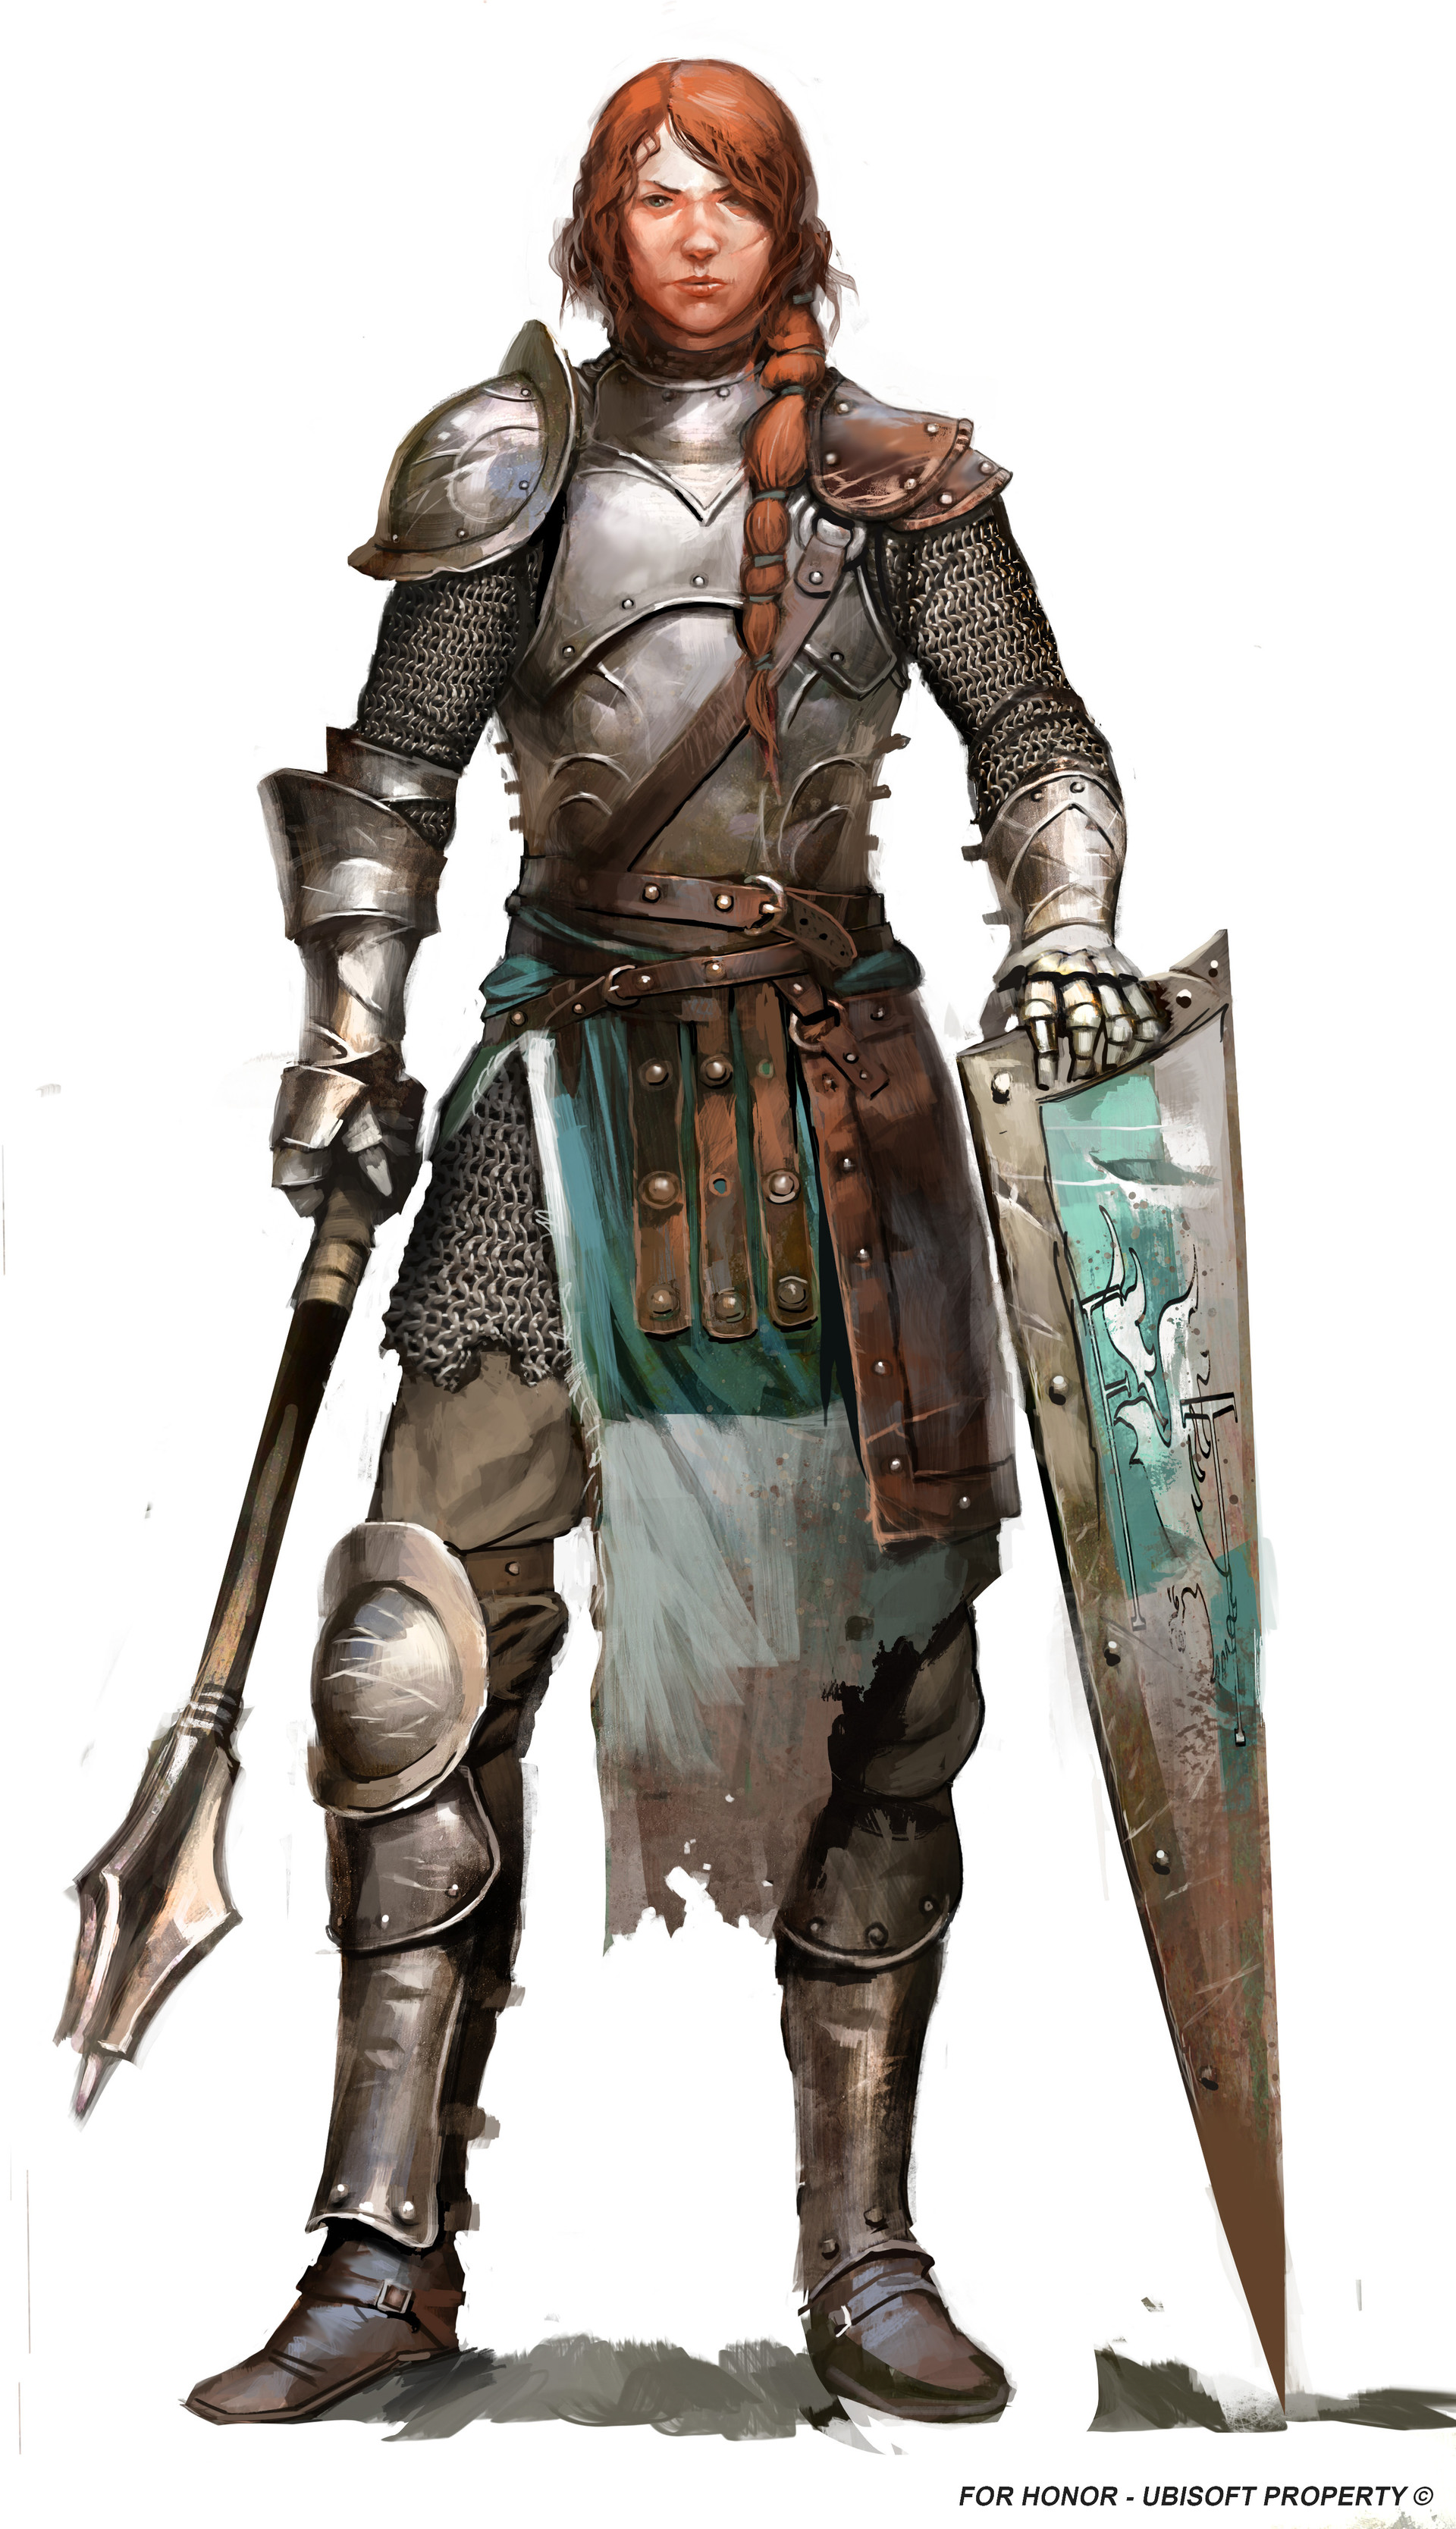 Guillaume Menuel - For Honor character concepts